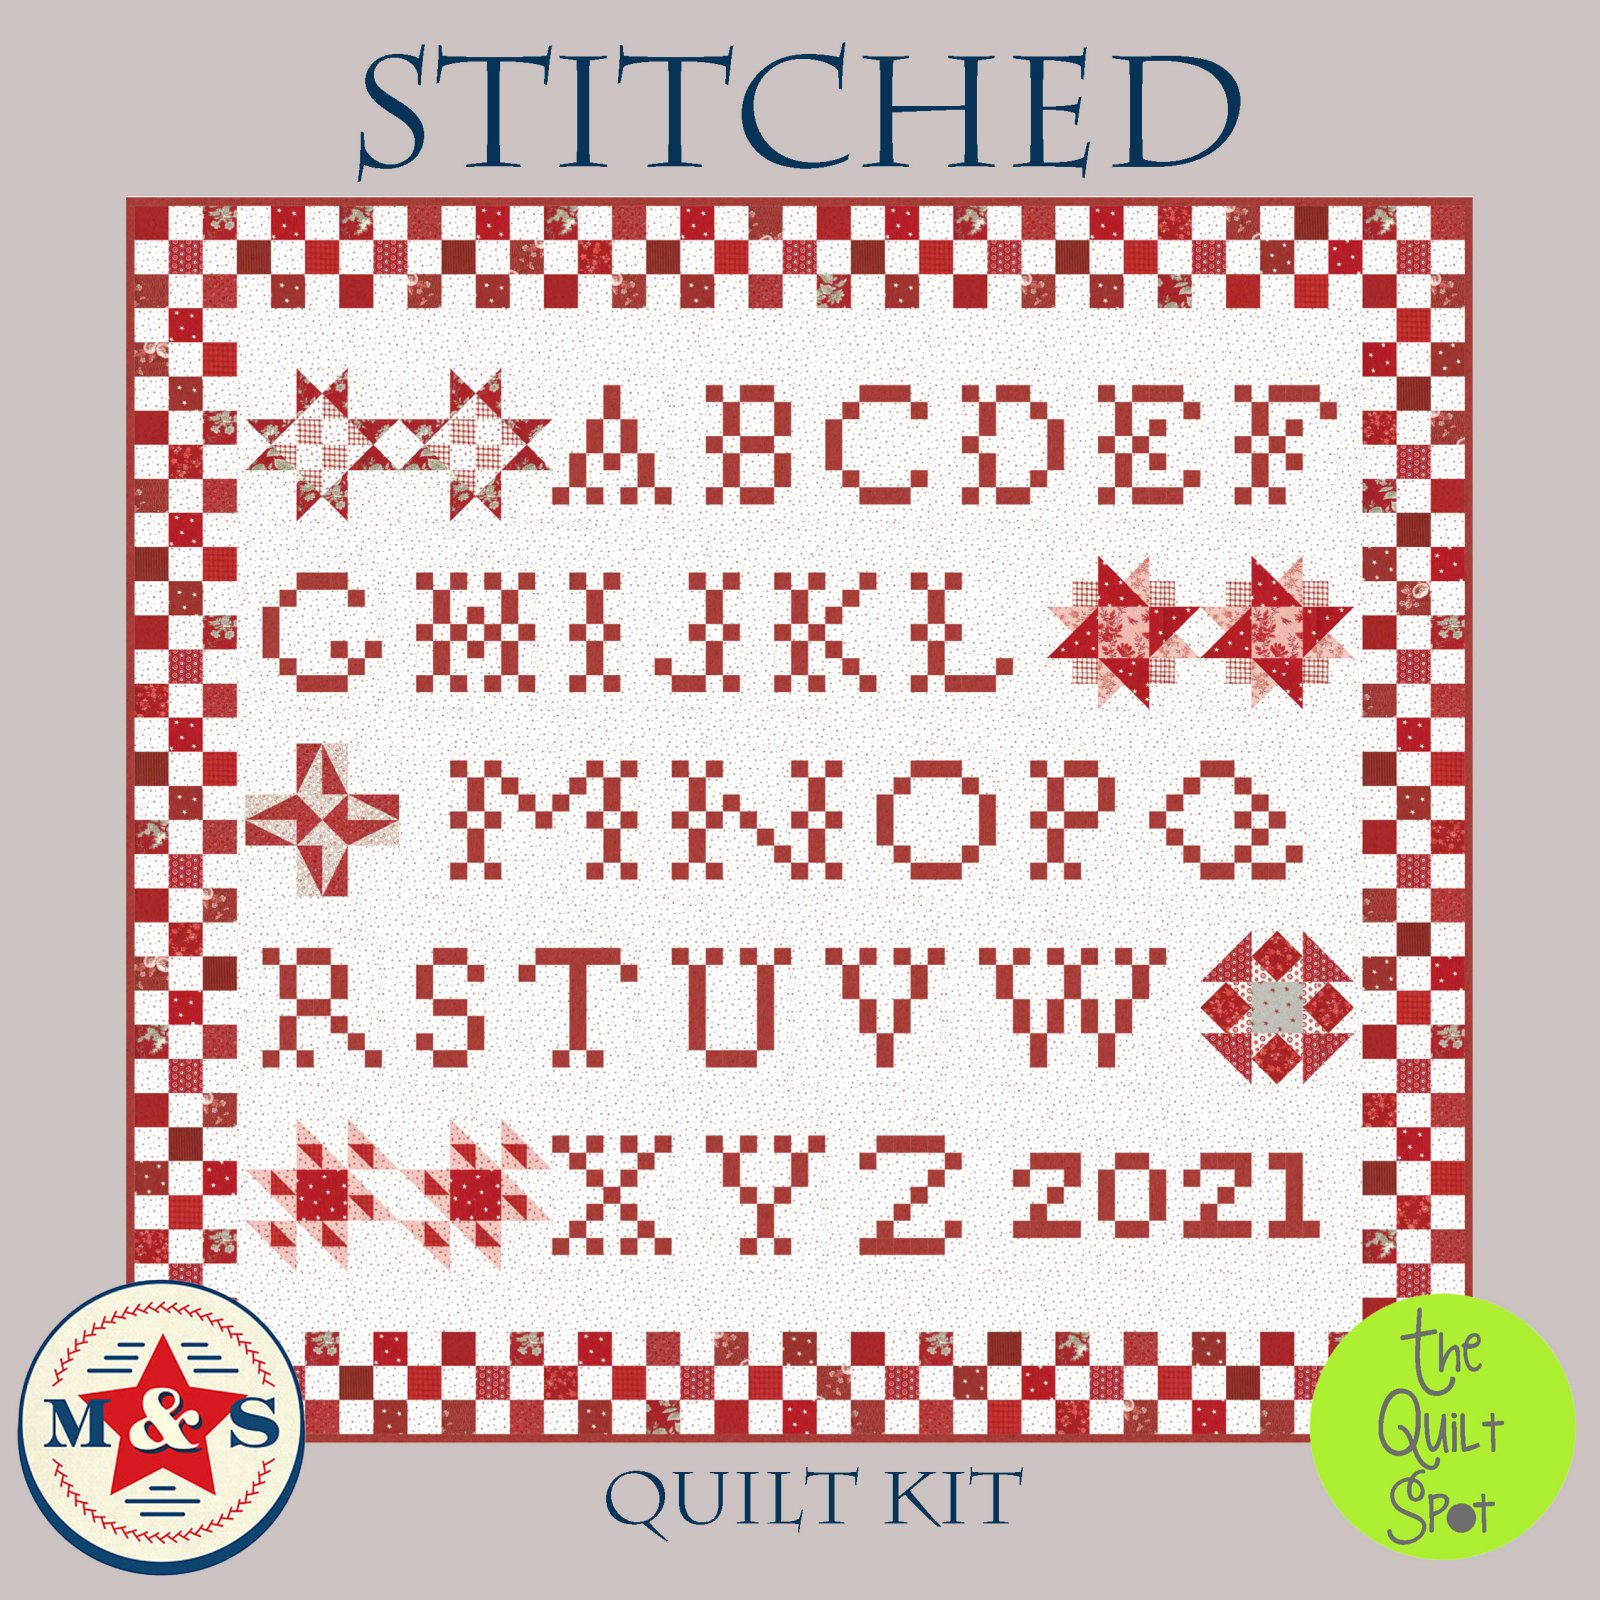 Stitched Quilt Kit by Minick & Simpson featuring Rosylen Fabric by Moda